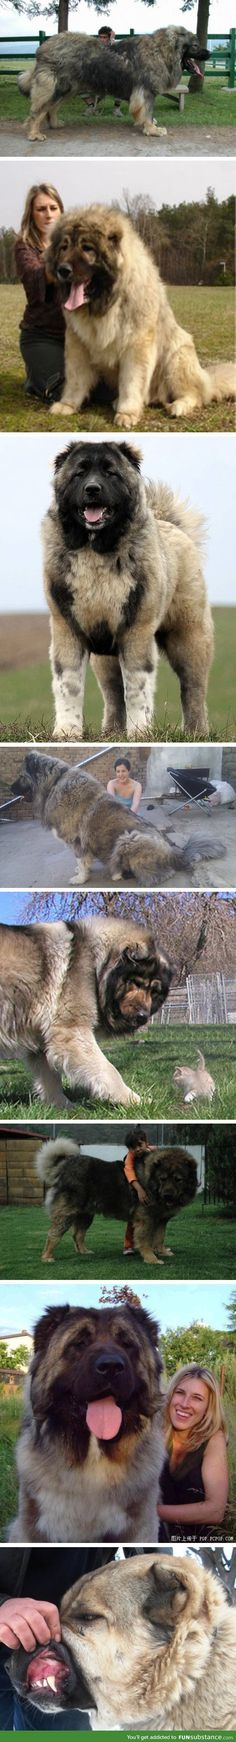 Caucasian Orvcharka mountain dogs were bred in Russia to hunt bears. I'd love to name one Ragnar